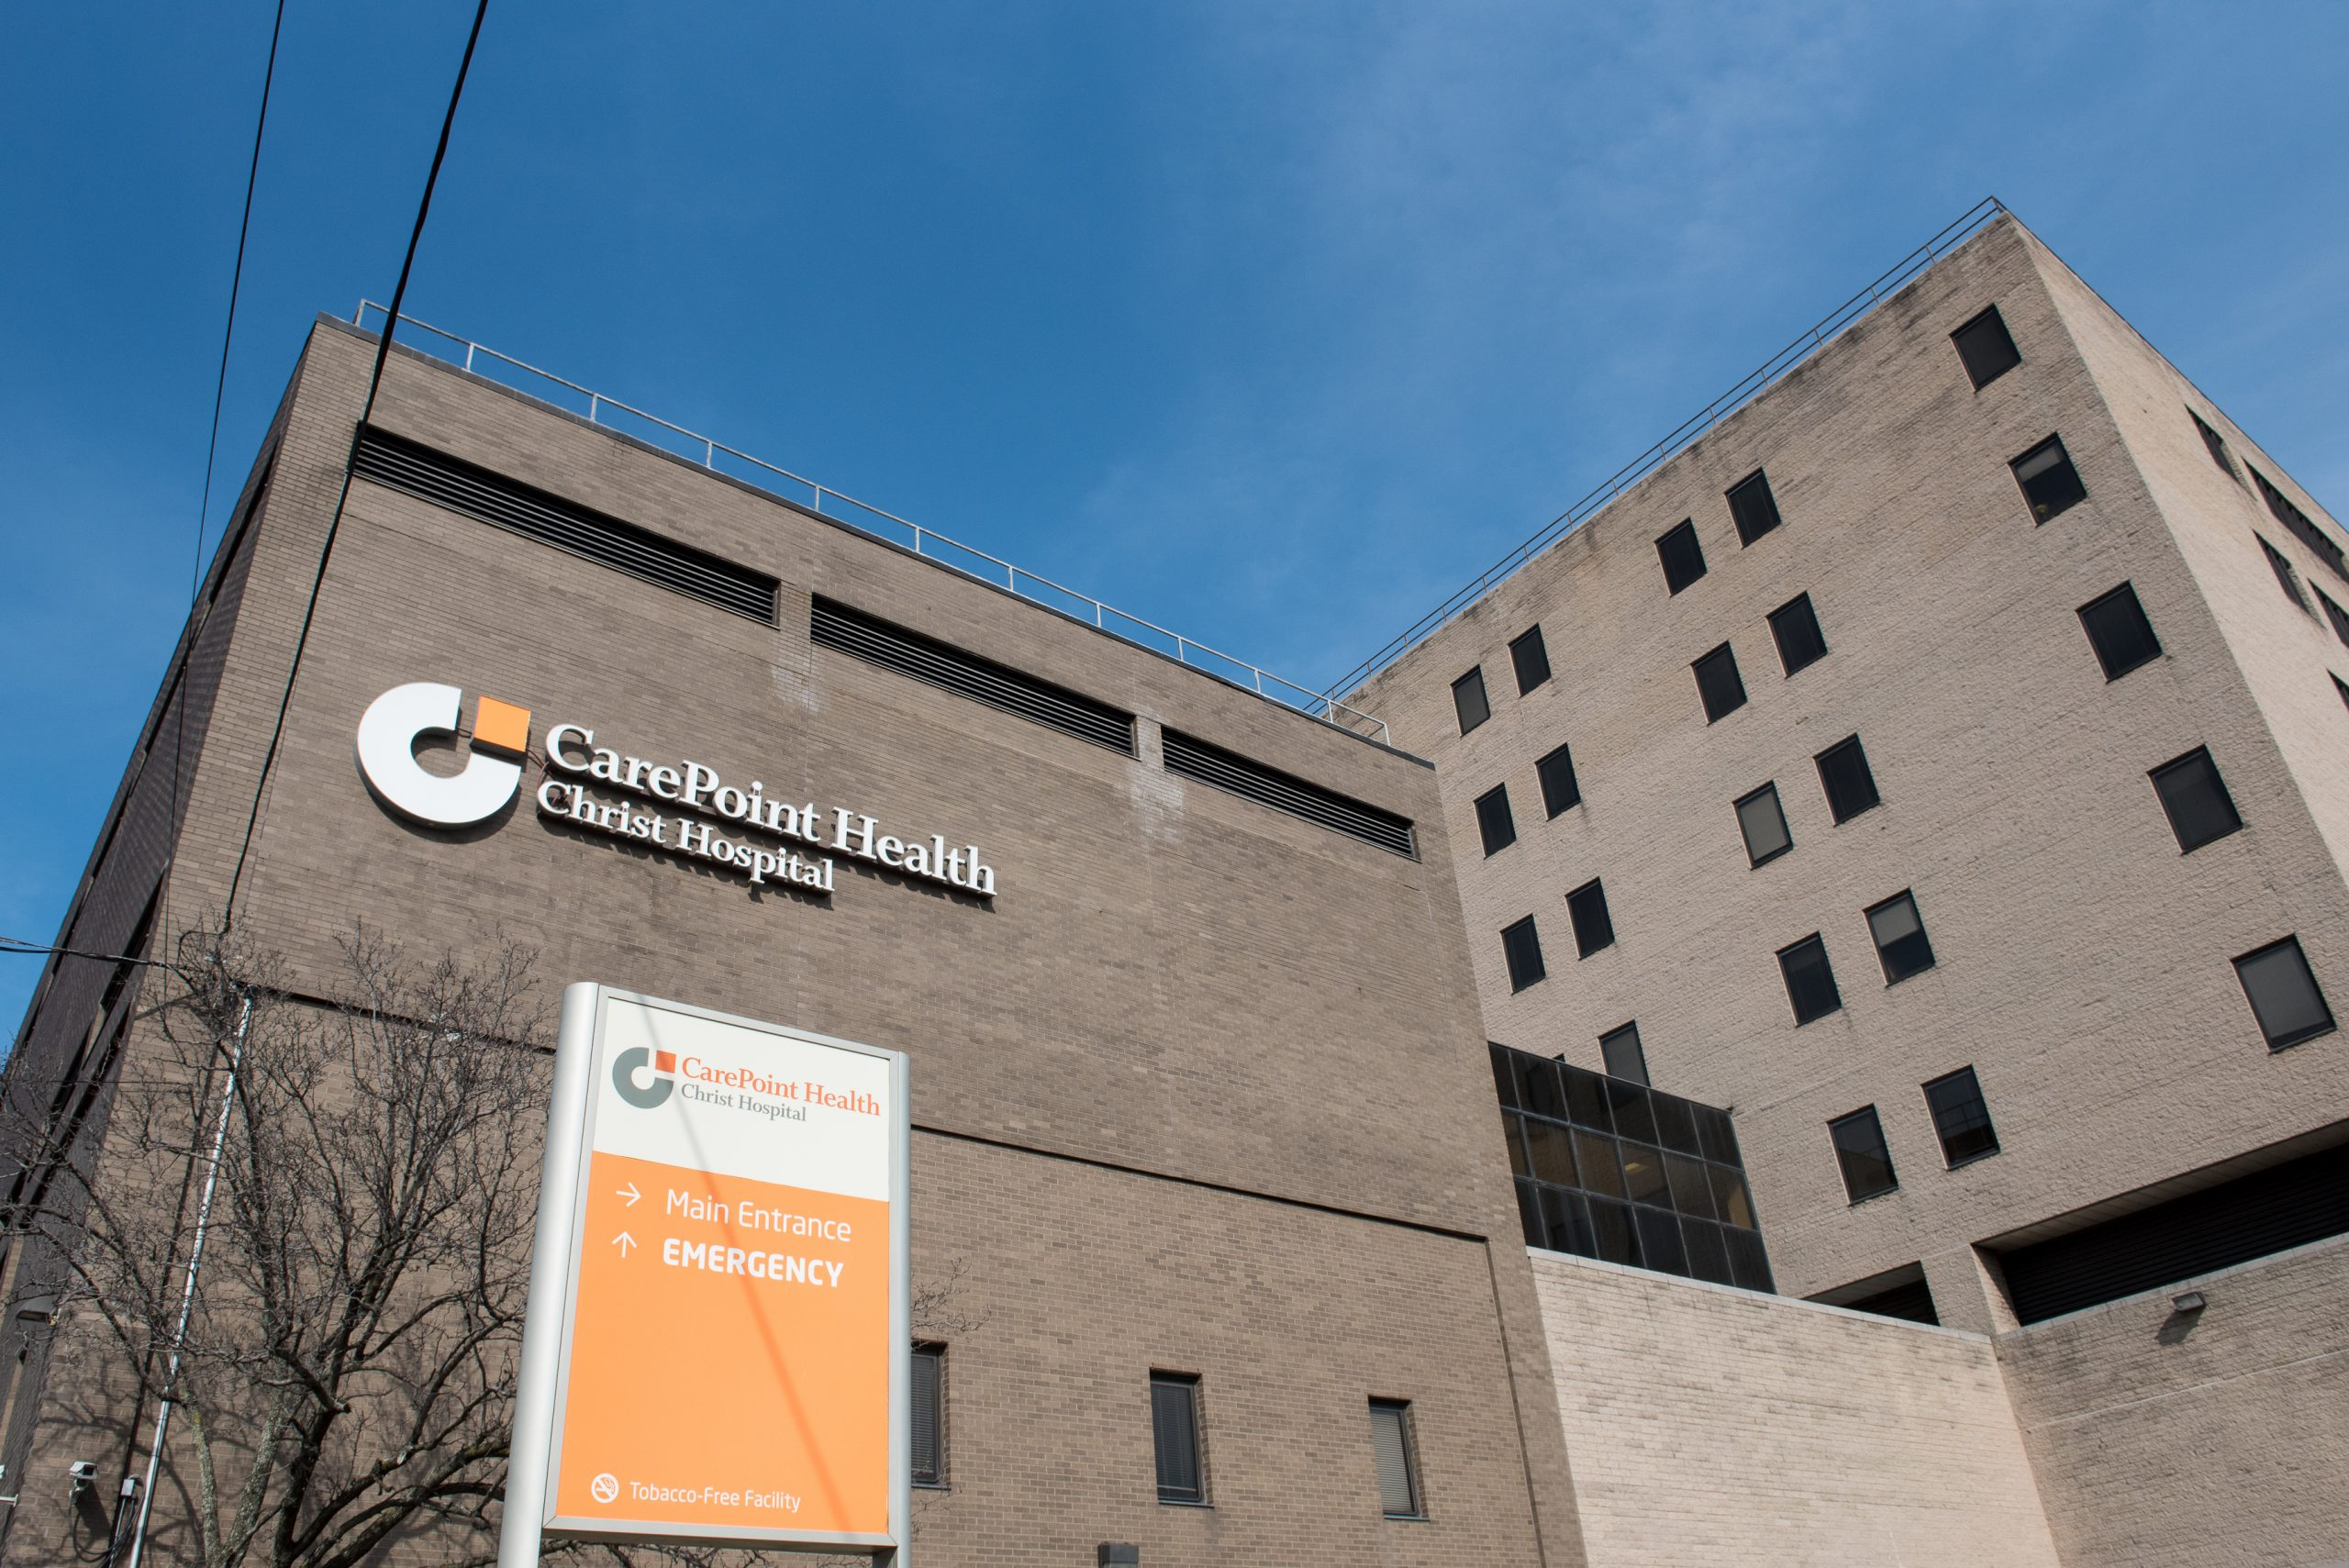 Christ Hospital in Jersey City to close OB-GYN department